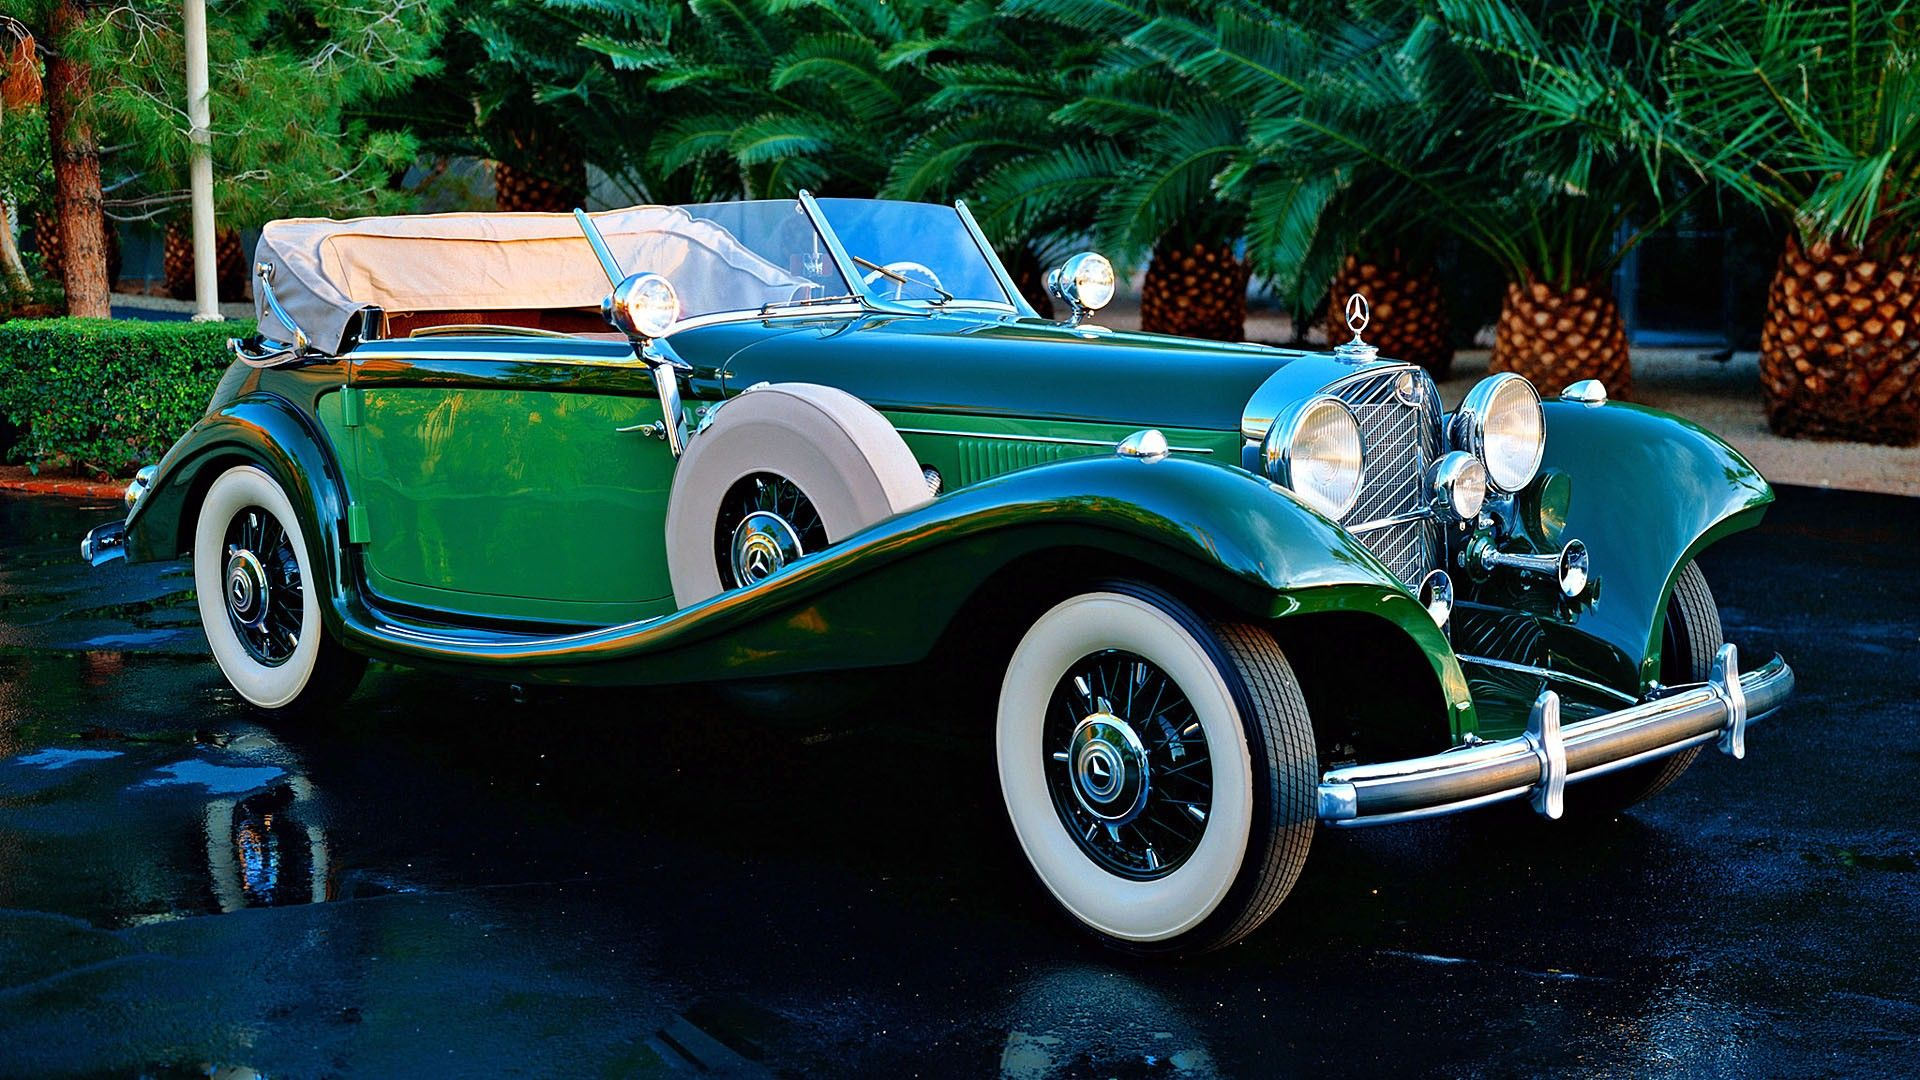 Vintage Cars Mercedes Benz Classic Cars 1920x1080 Wallpaper